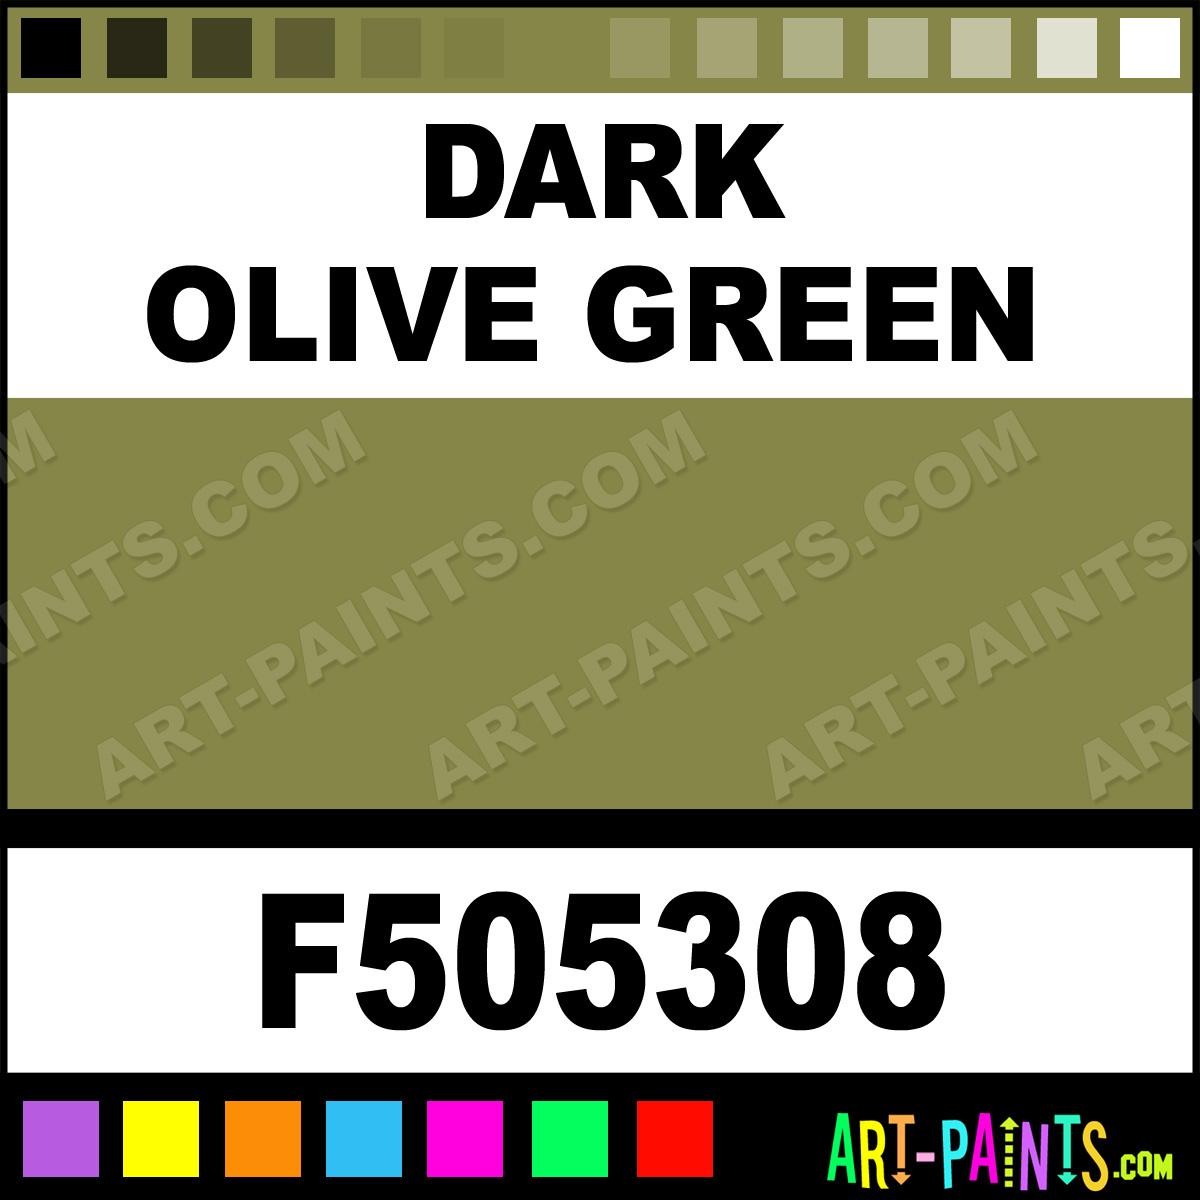 The 25 Best Olive Green Paints Ideas On Pinterest: Dark Olive Green Model Acrylic Paints